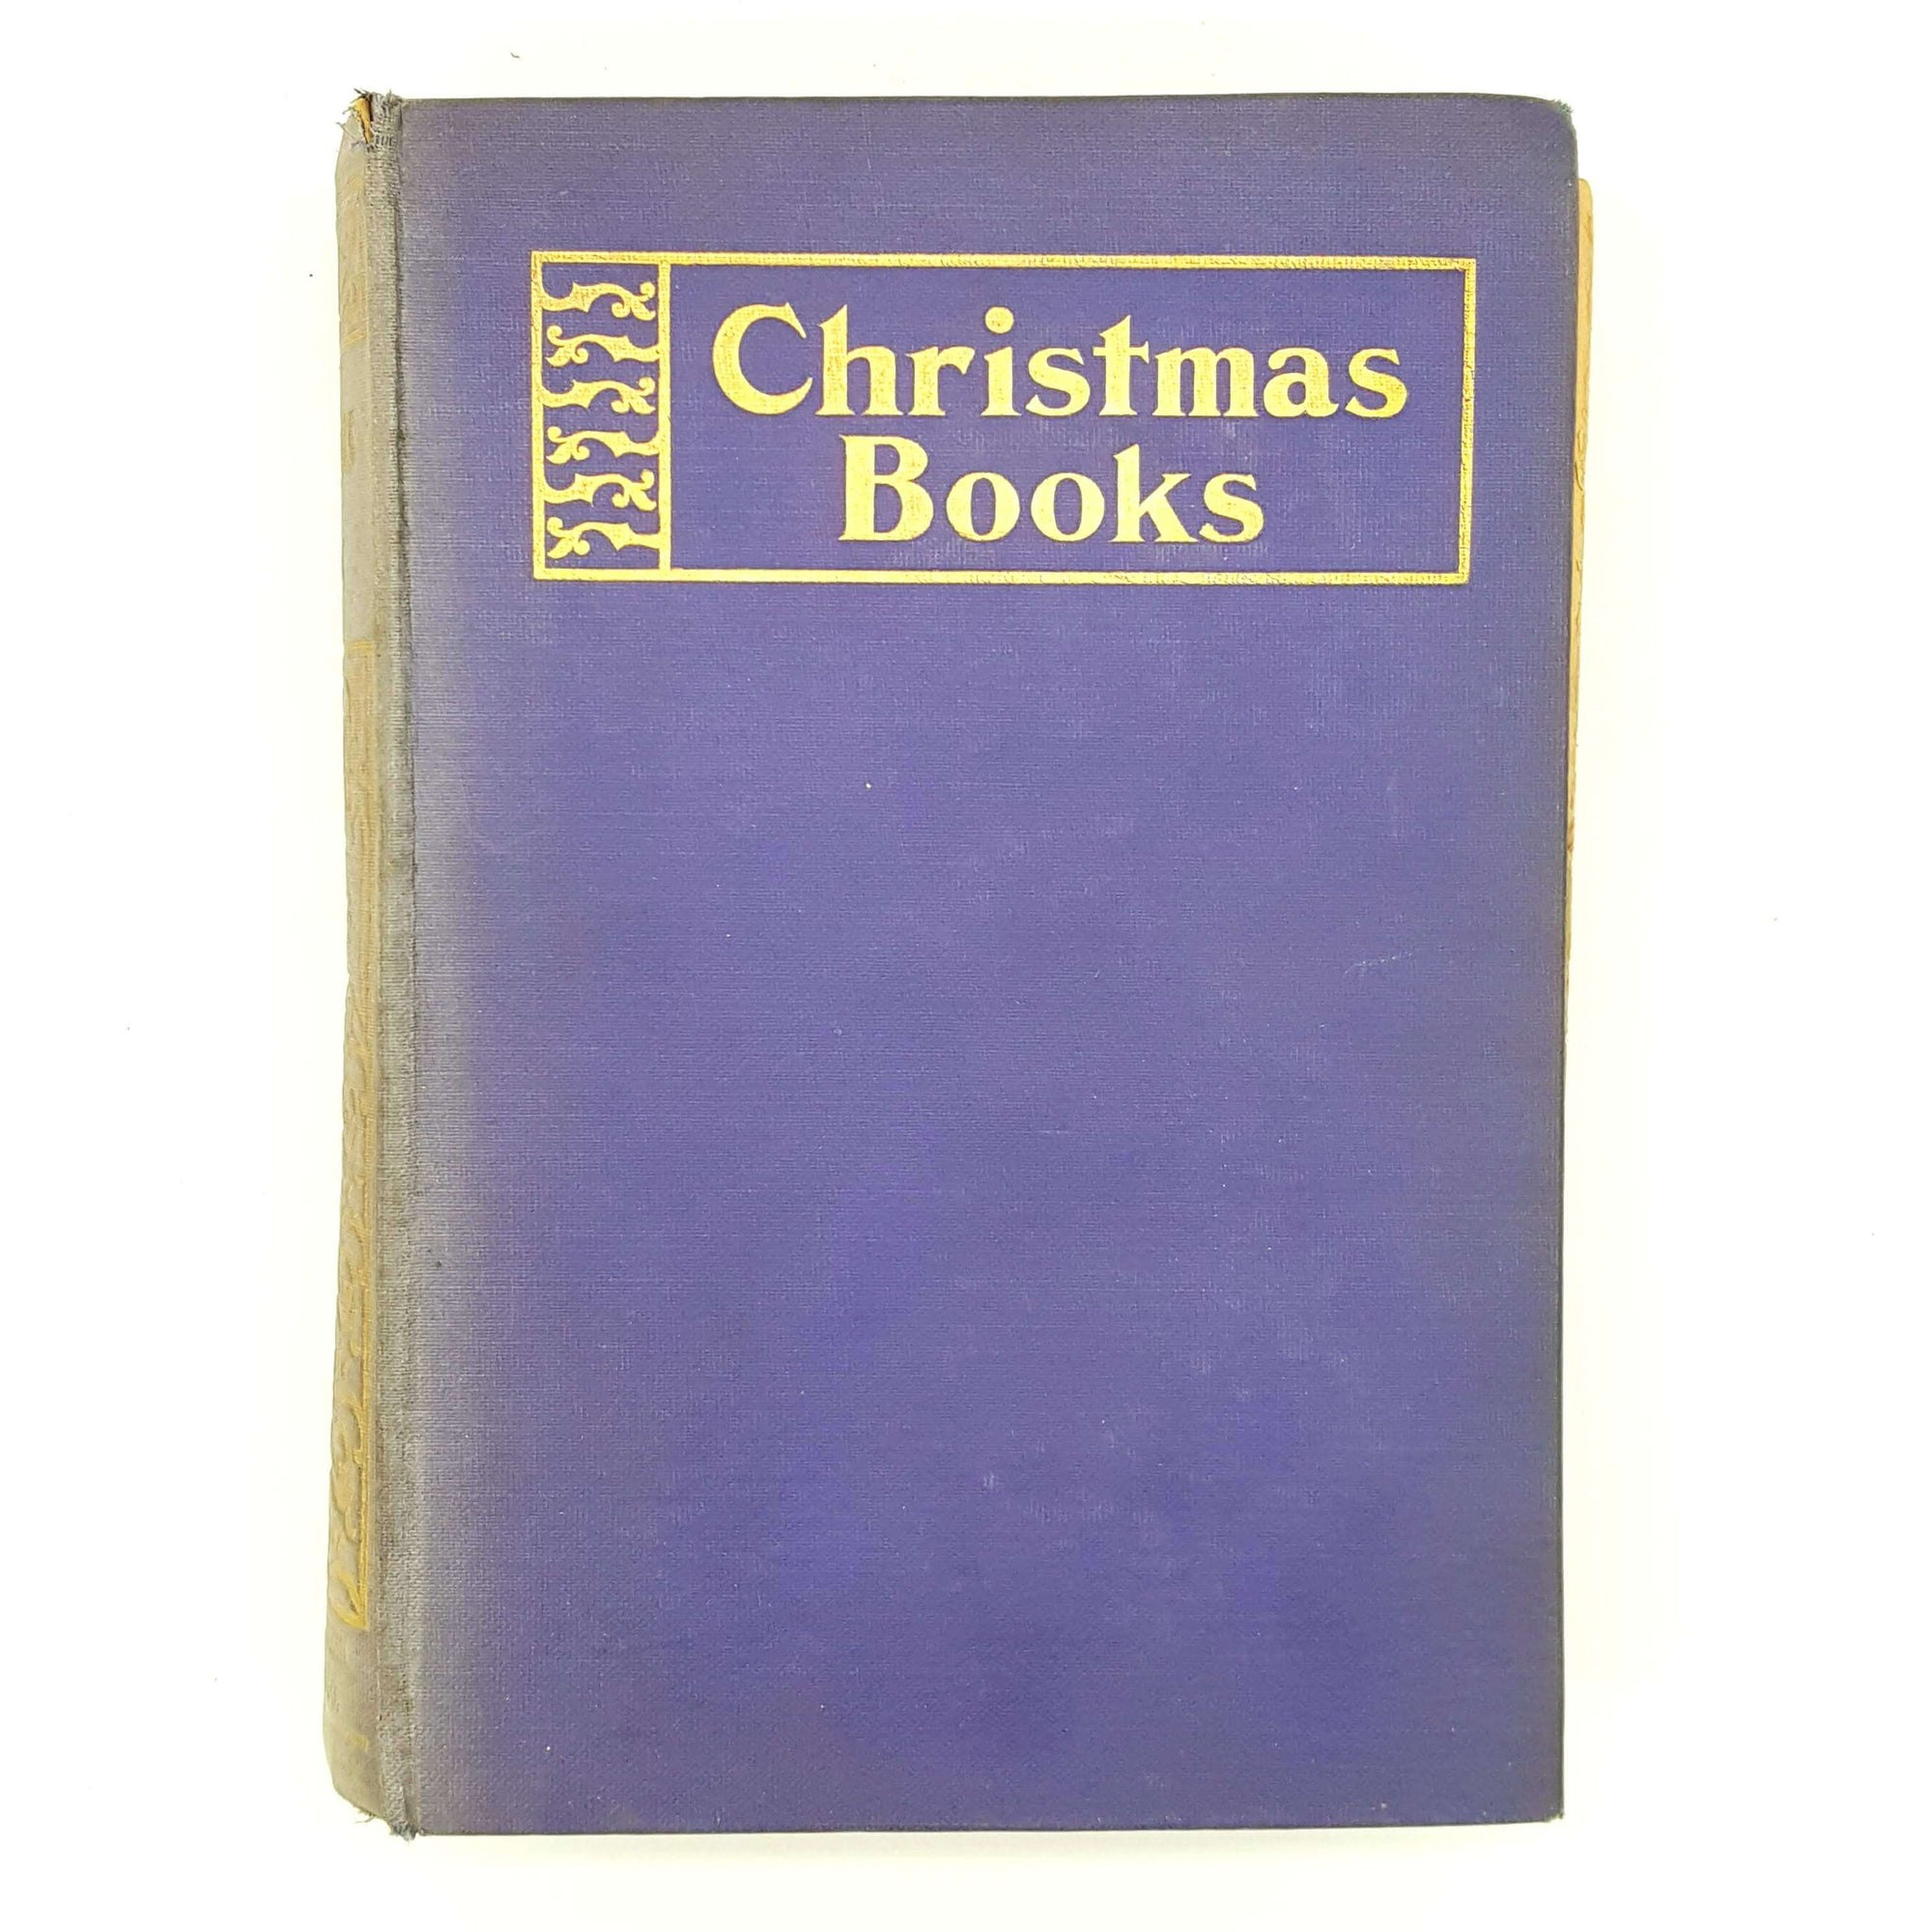 Christmas Books by Charles Dickens - Griffith Farran Browne & Co Ltd Country House Library